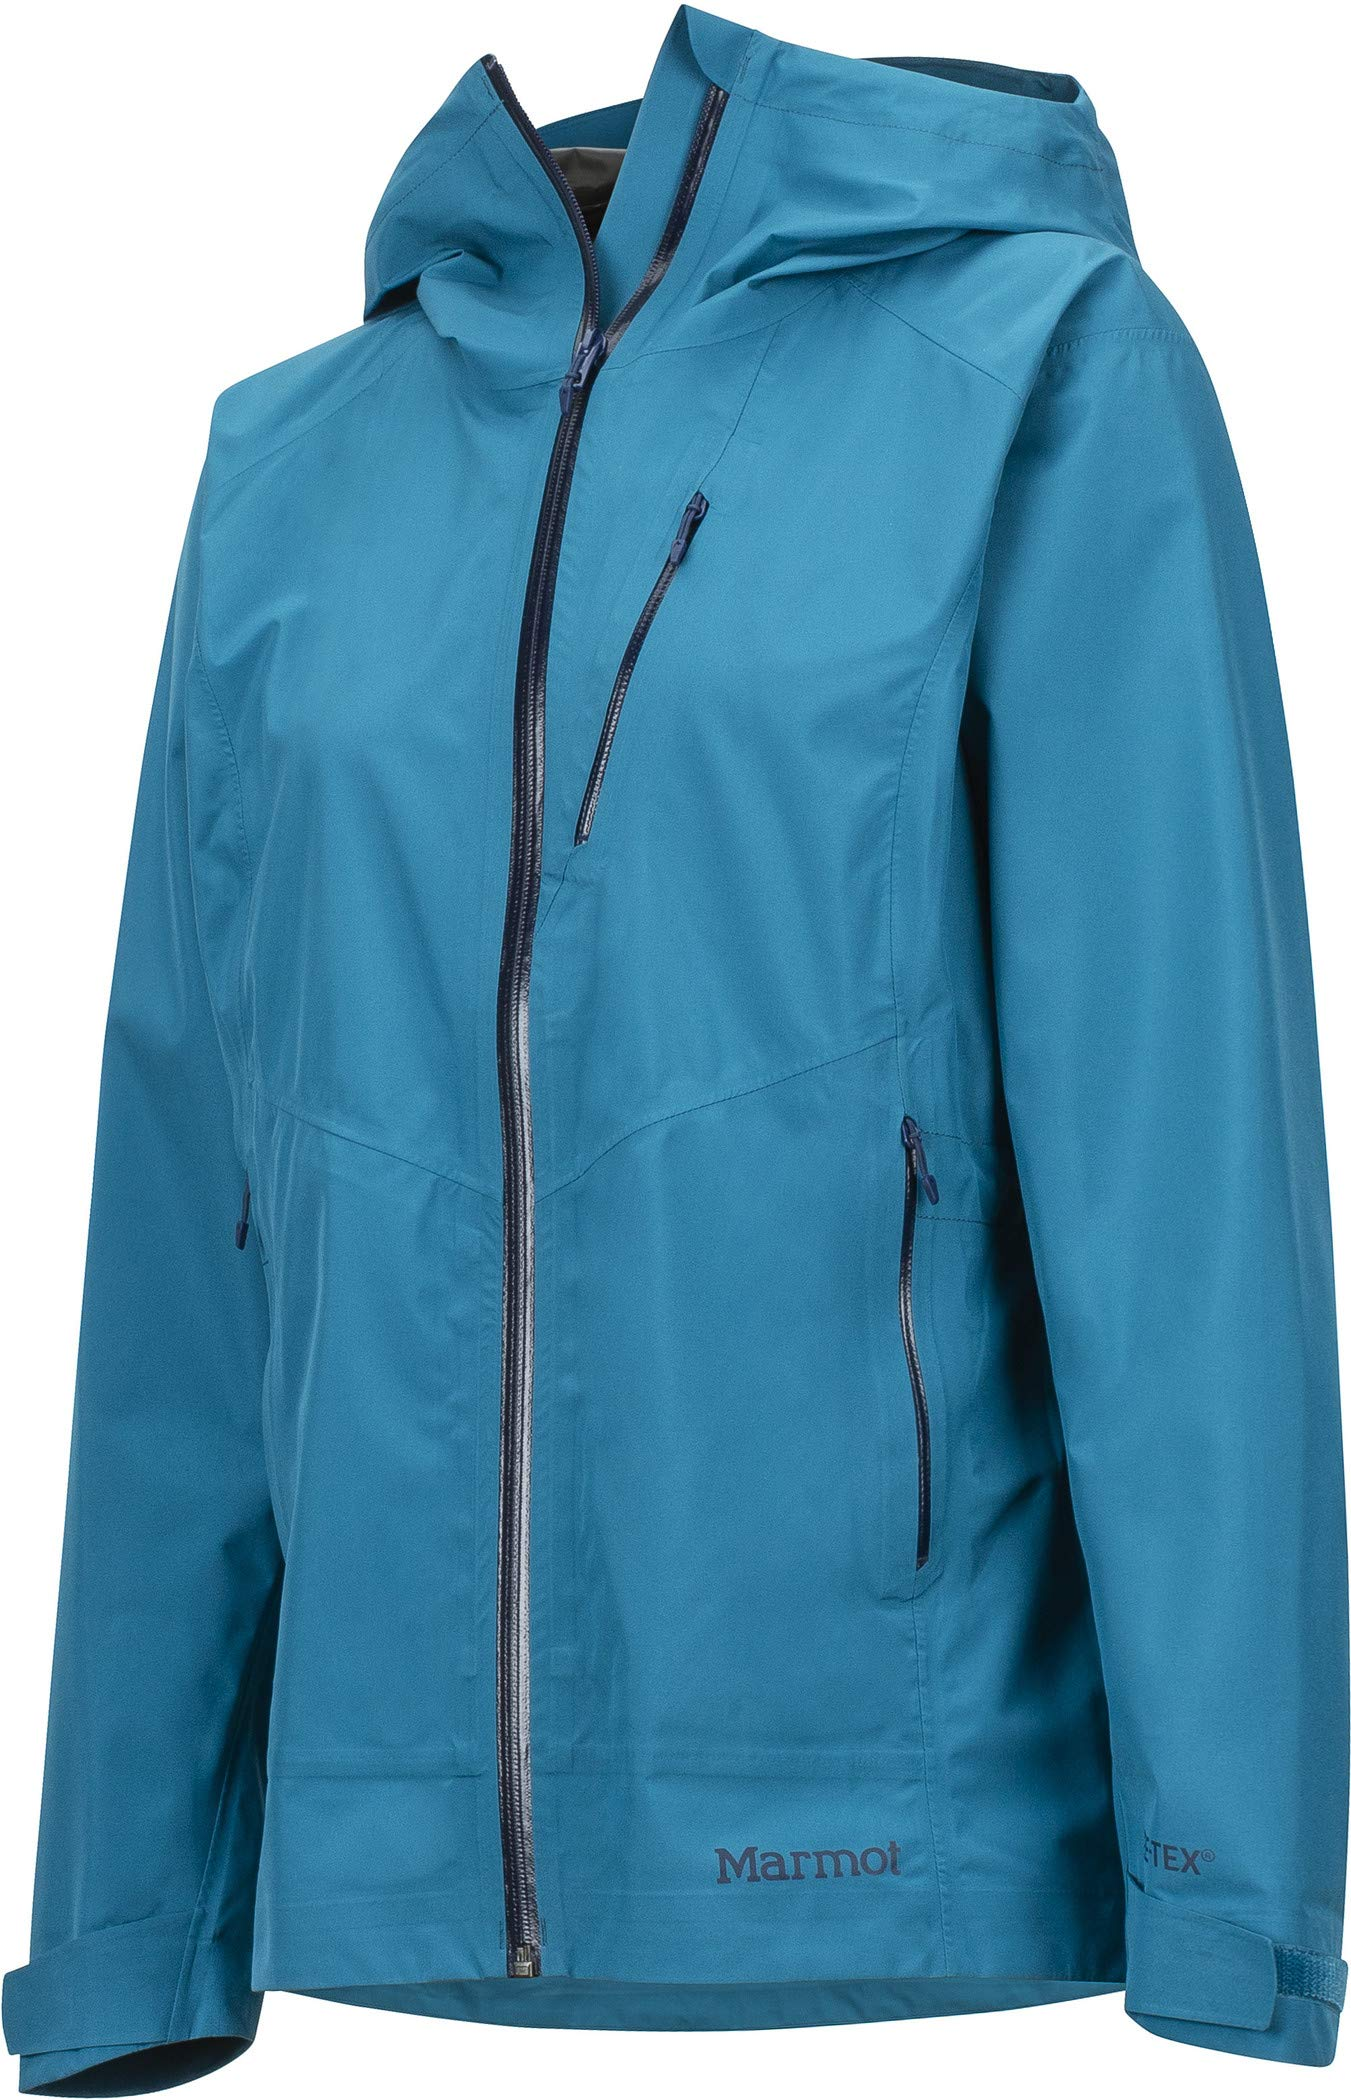 81RYCjF4JtL - Marmot Women's Wm's Knife Edge Hardshell Rain Jacket, Raincoat, Windproof, Waterproof, Breathable